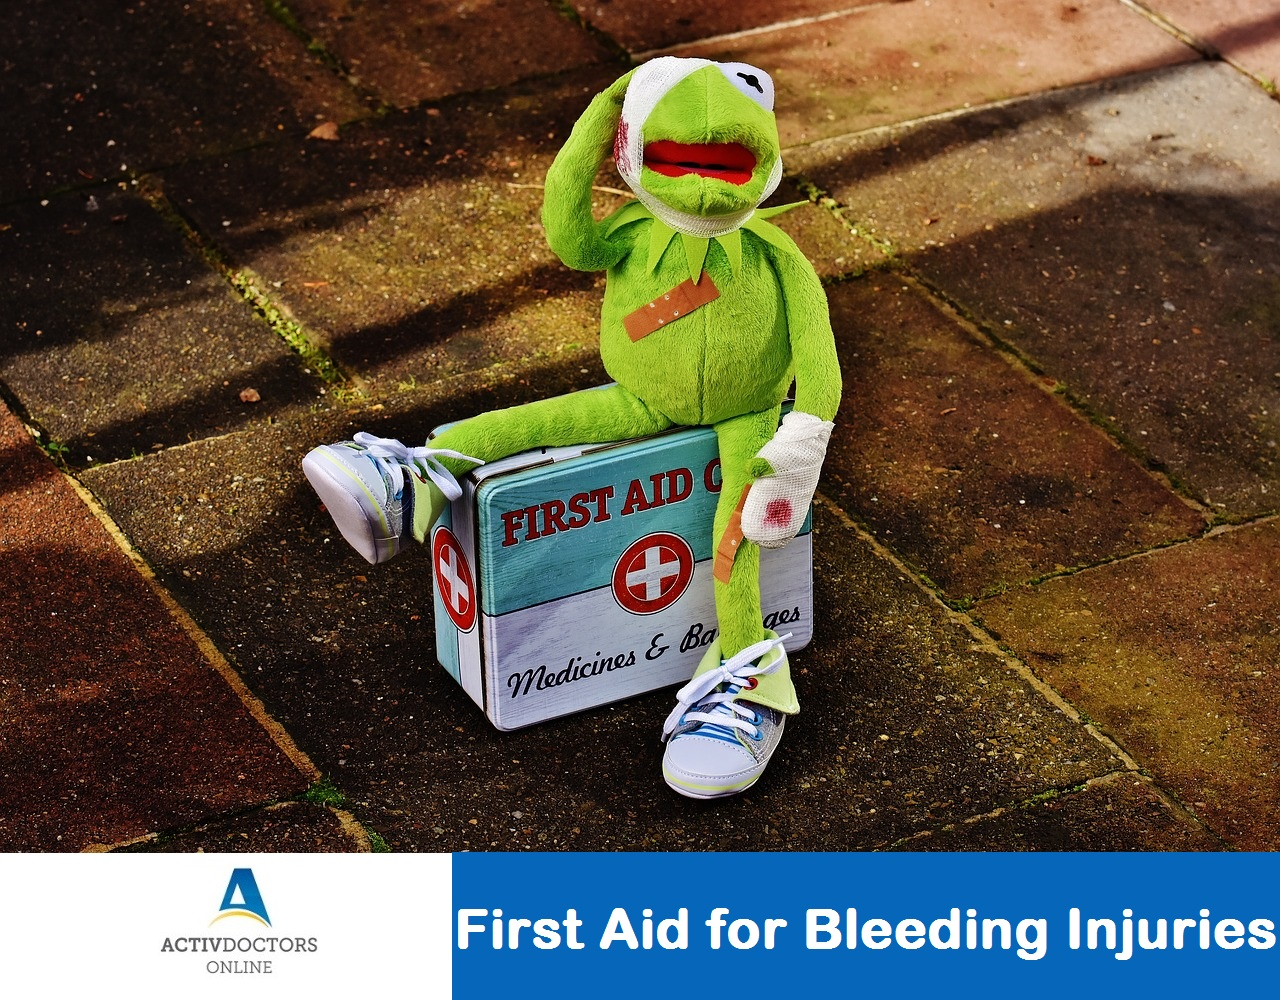 First Aid for Bleeding Injuries